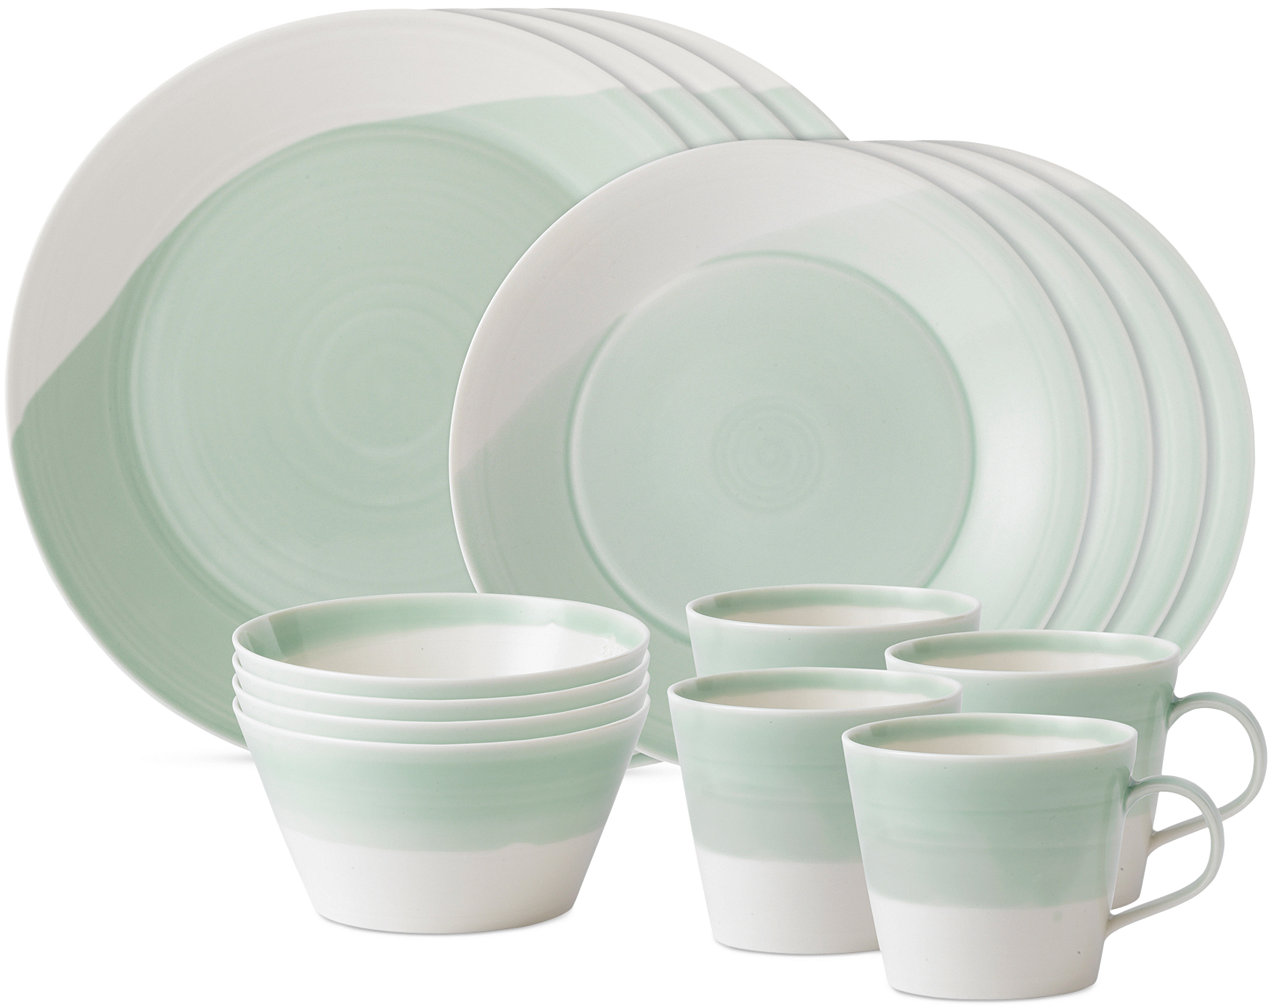 Royal Doulton Dinnerware, 1815 Green 16-Piece Set, Service for 4 - Fine China - Macy's